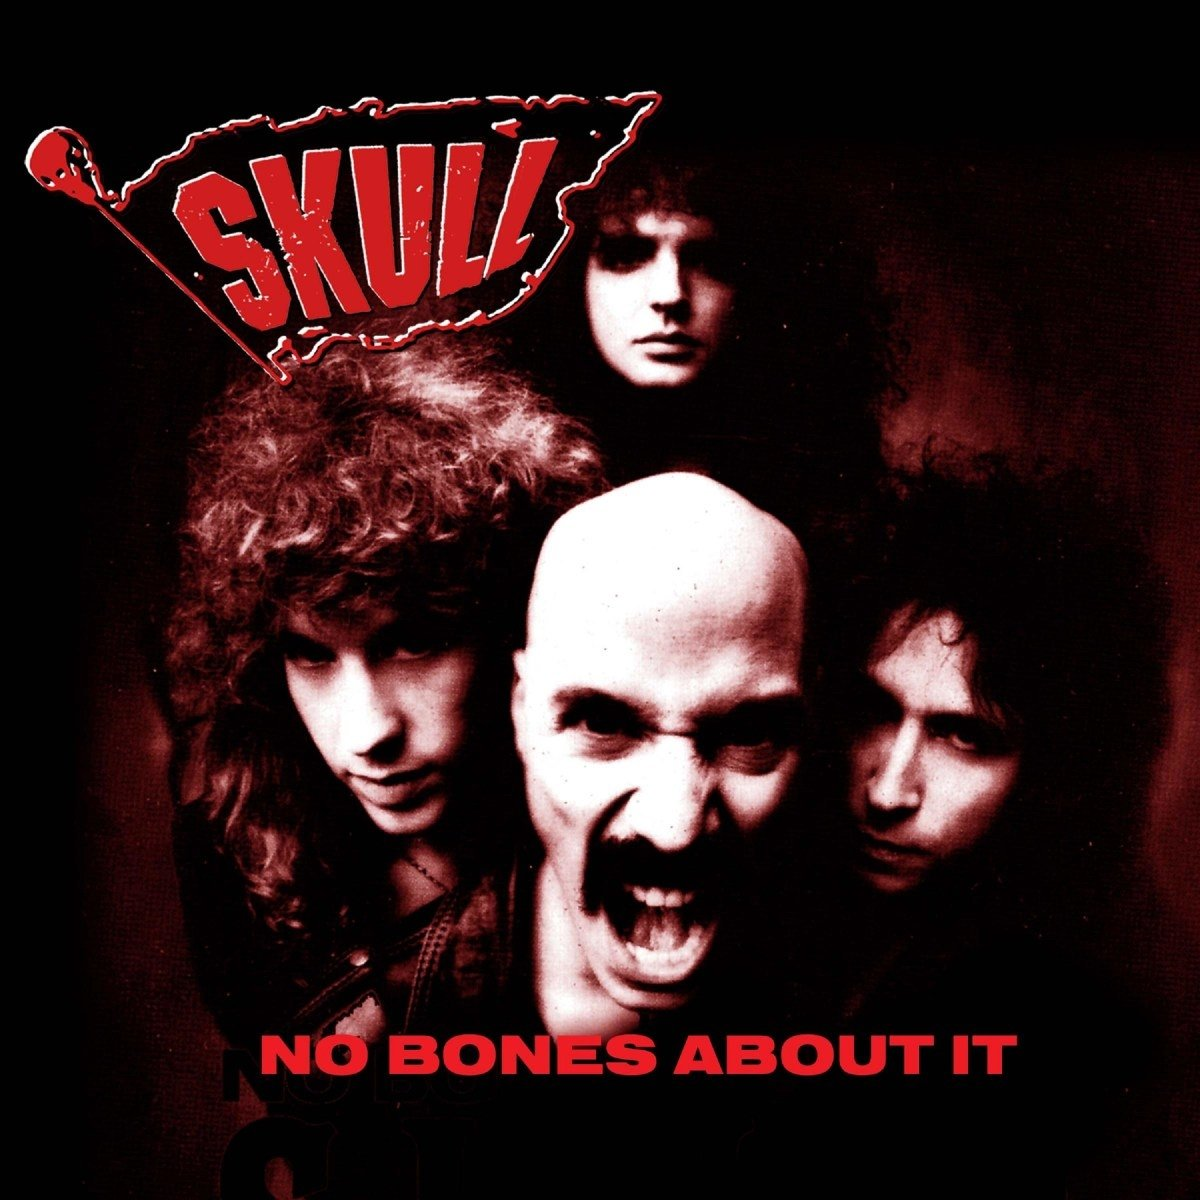 CD : The Skull - No Bones About It (Expanded Version, United Kingdom - Import, 2PC)